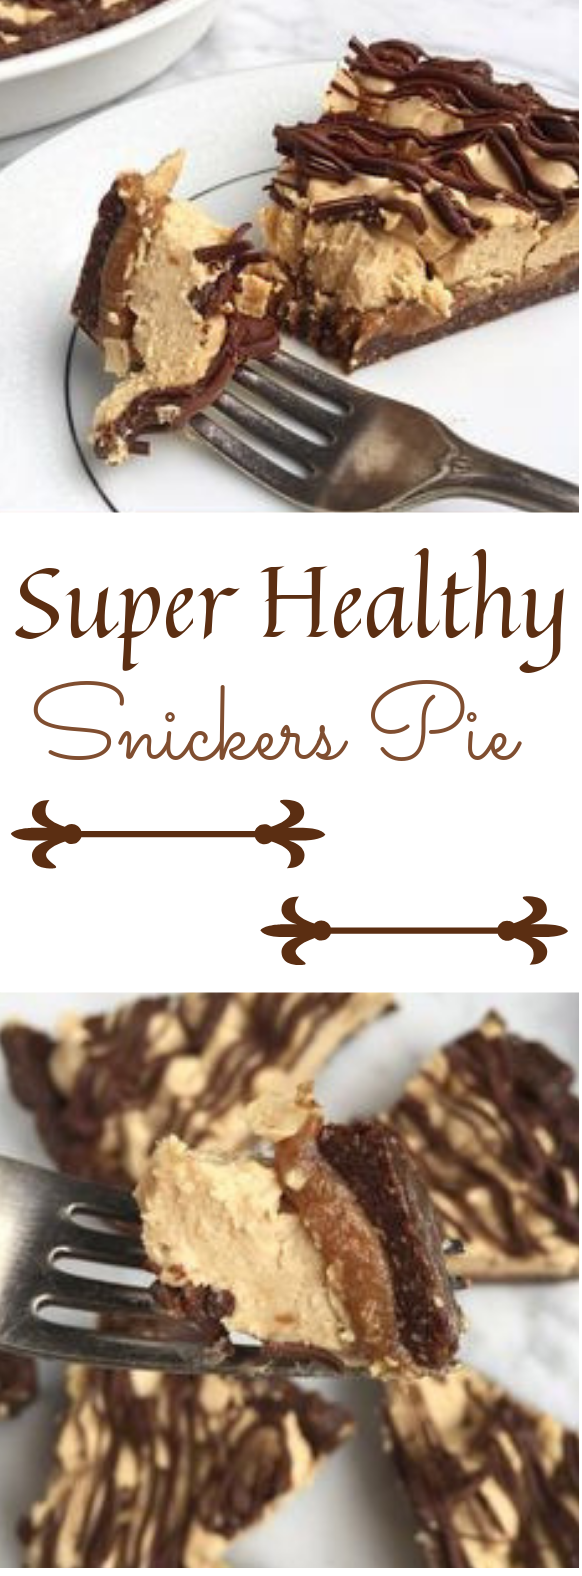 Healthy Snickers Pie #cake #dessert